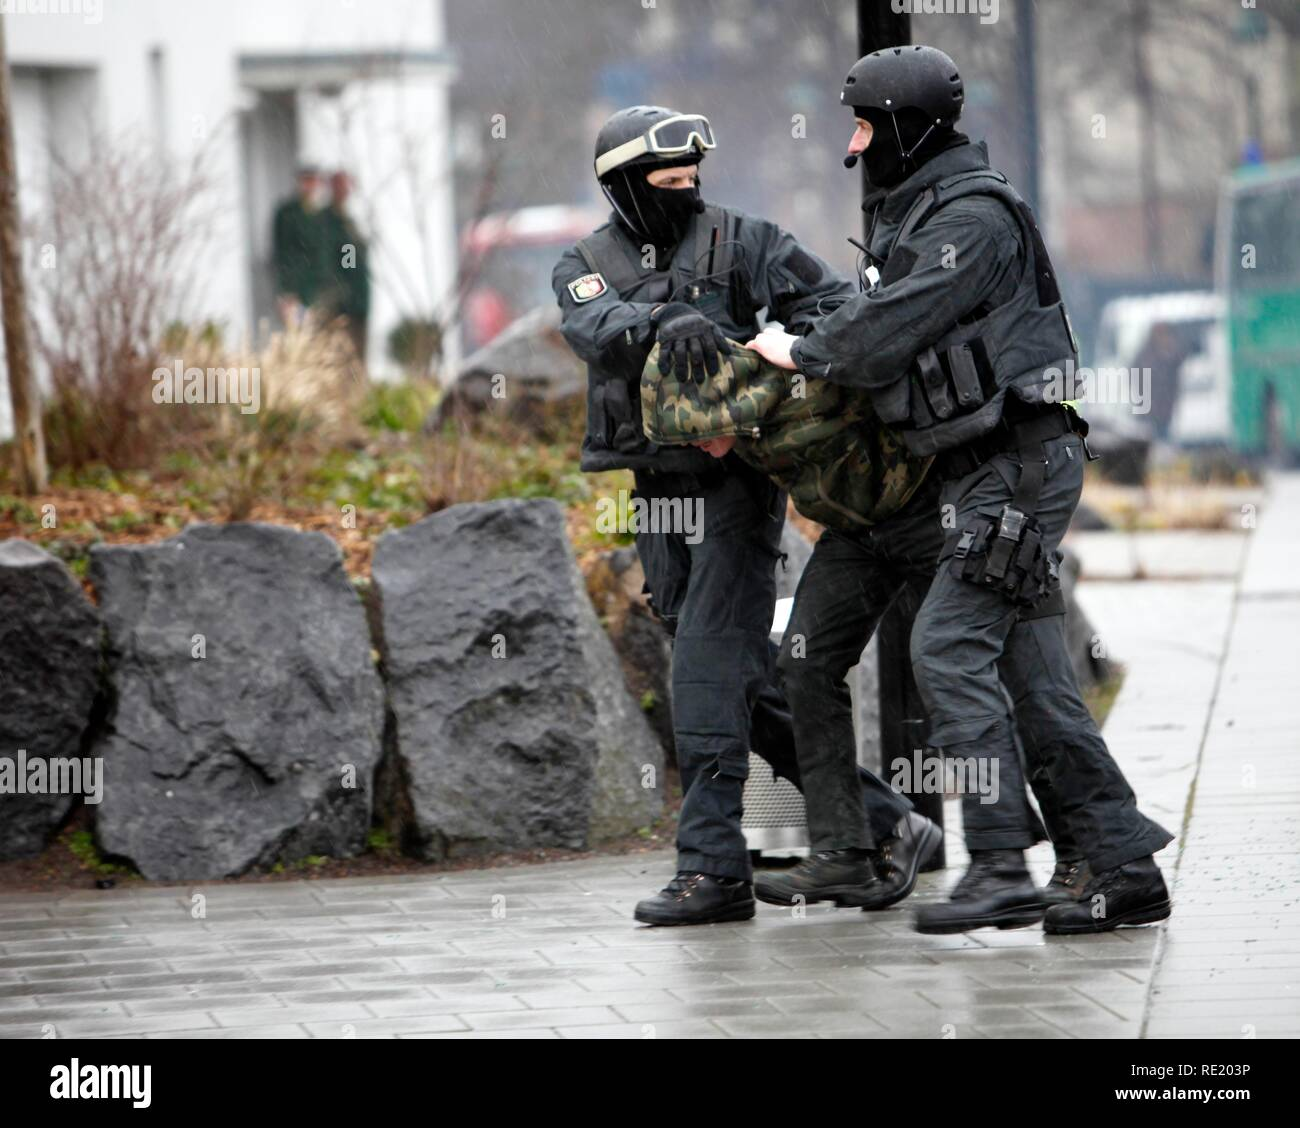 Police special task forces, SEC, during a practical rehearsal, capturing 2 perpetrators in a car, Duesseldorf - Stock Image